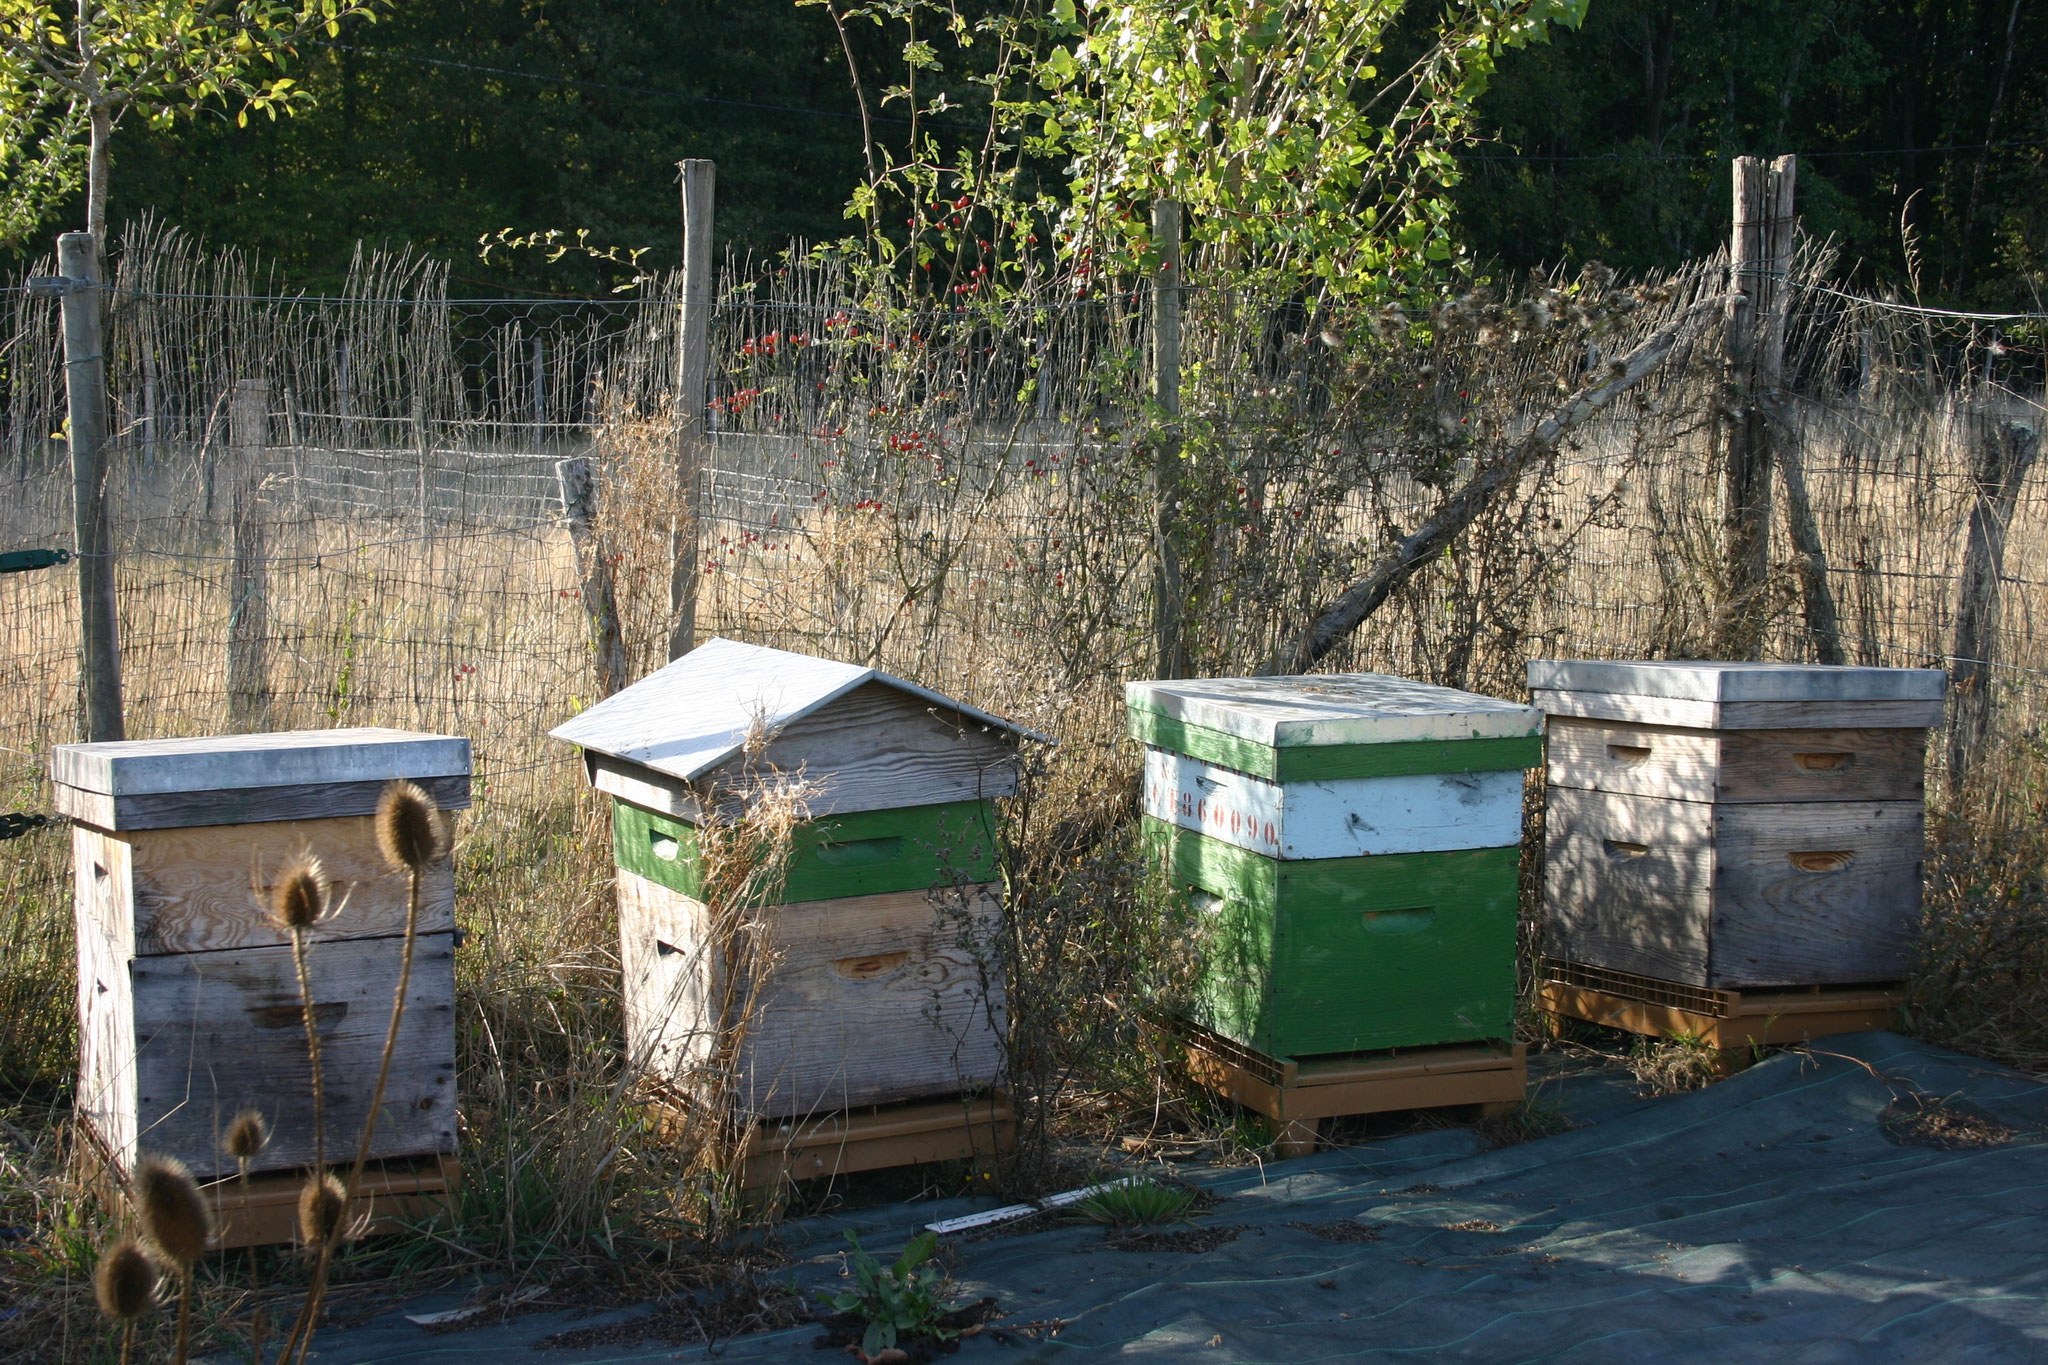 Hives for the bees